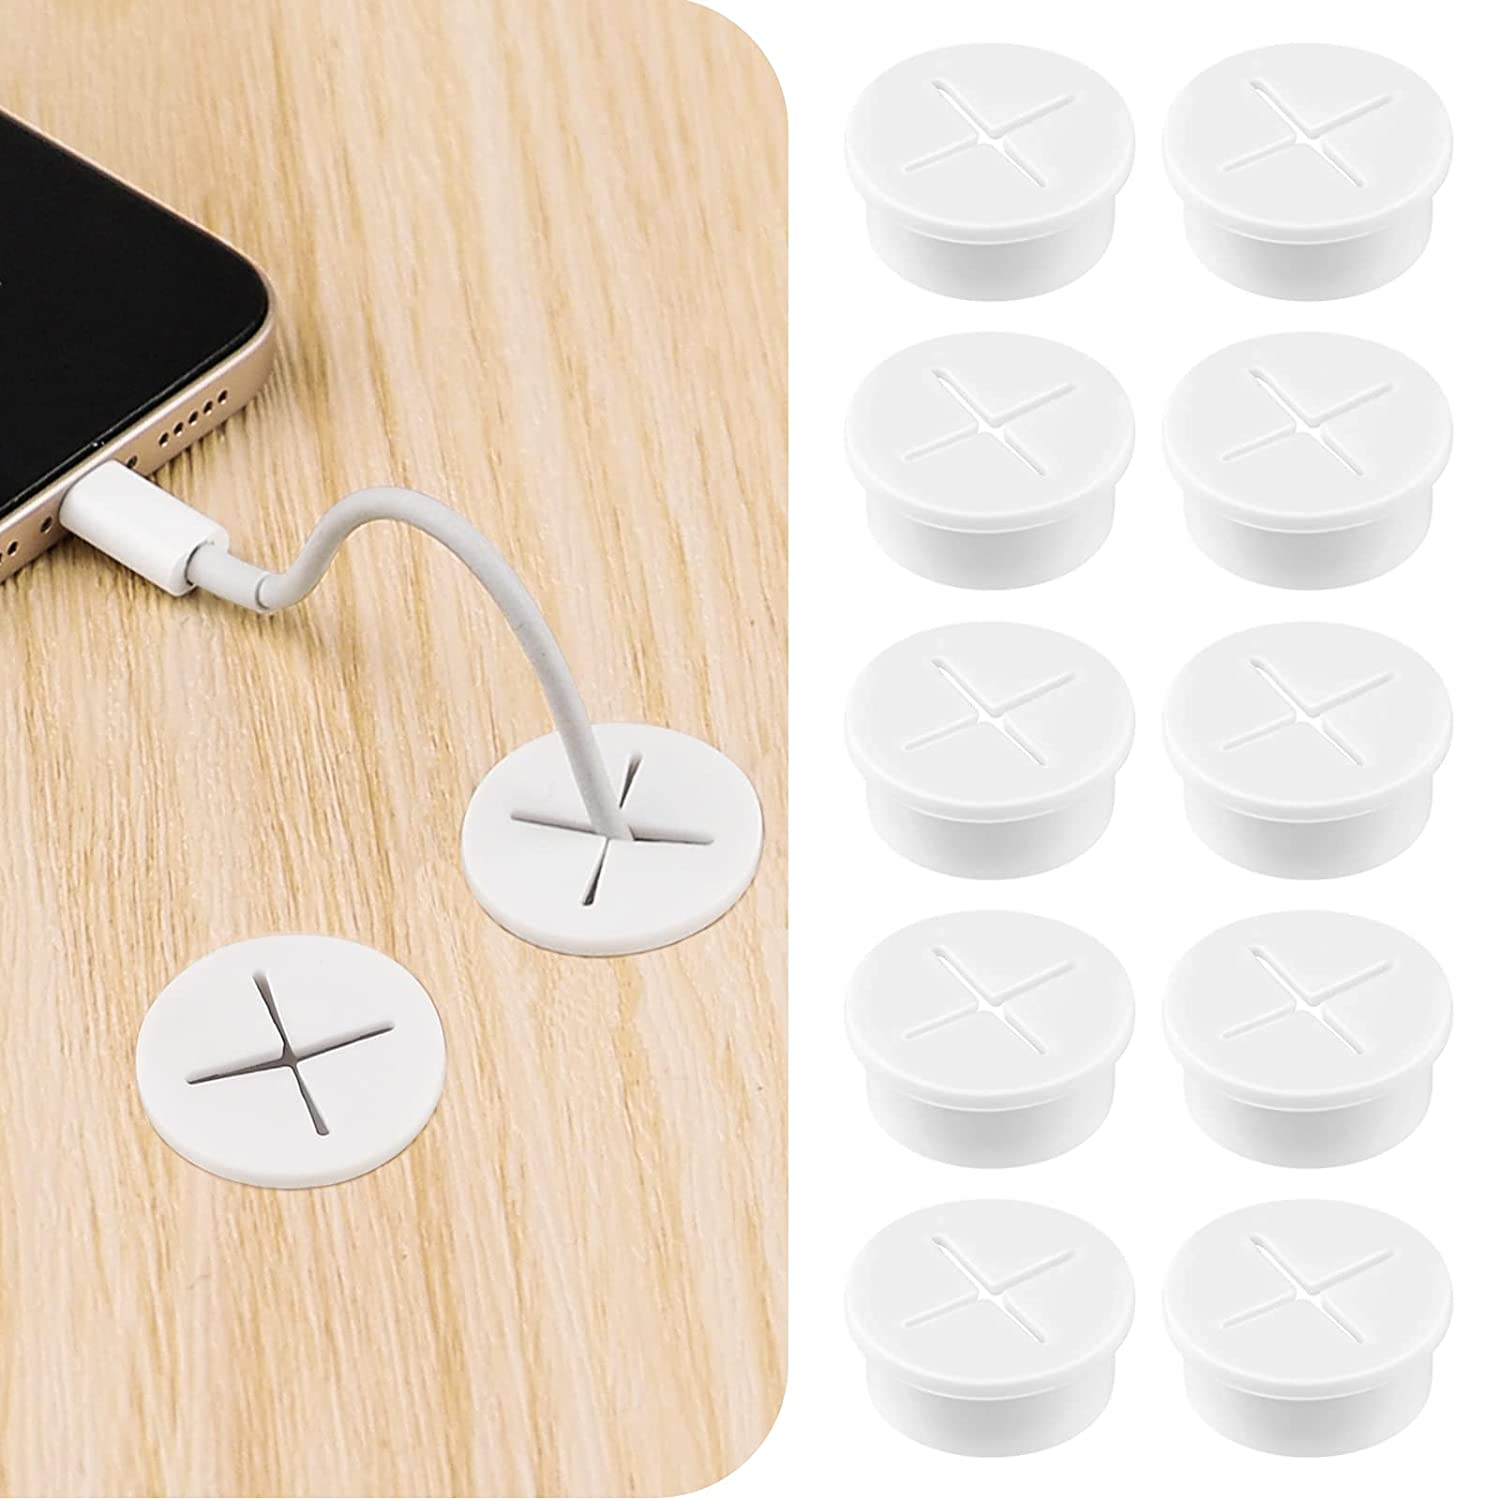 Sanroms 10 Pack Flexible Silicone Cable Cord Grommet Rubber Grommets for Table, Desk, TV Console and Other Furnitures Hole Cover Cable Management Wire Organizer Cable Pass Through (White)